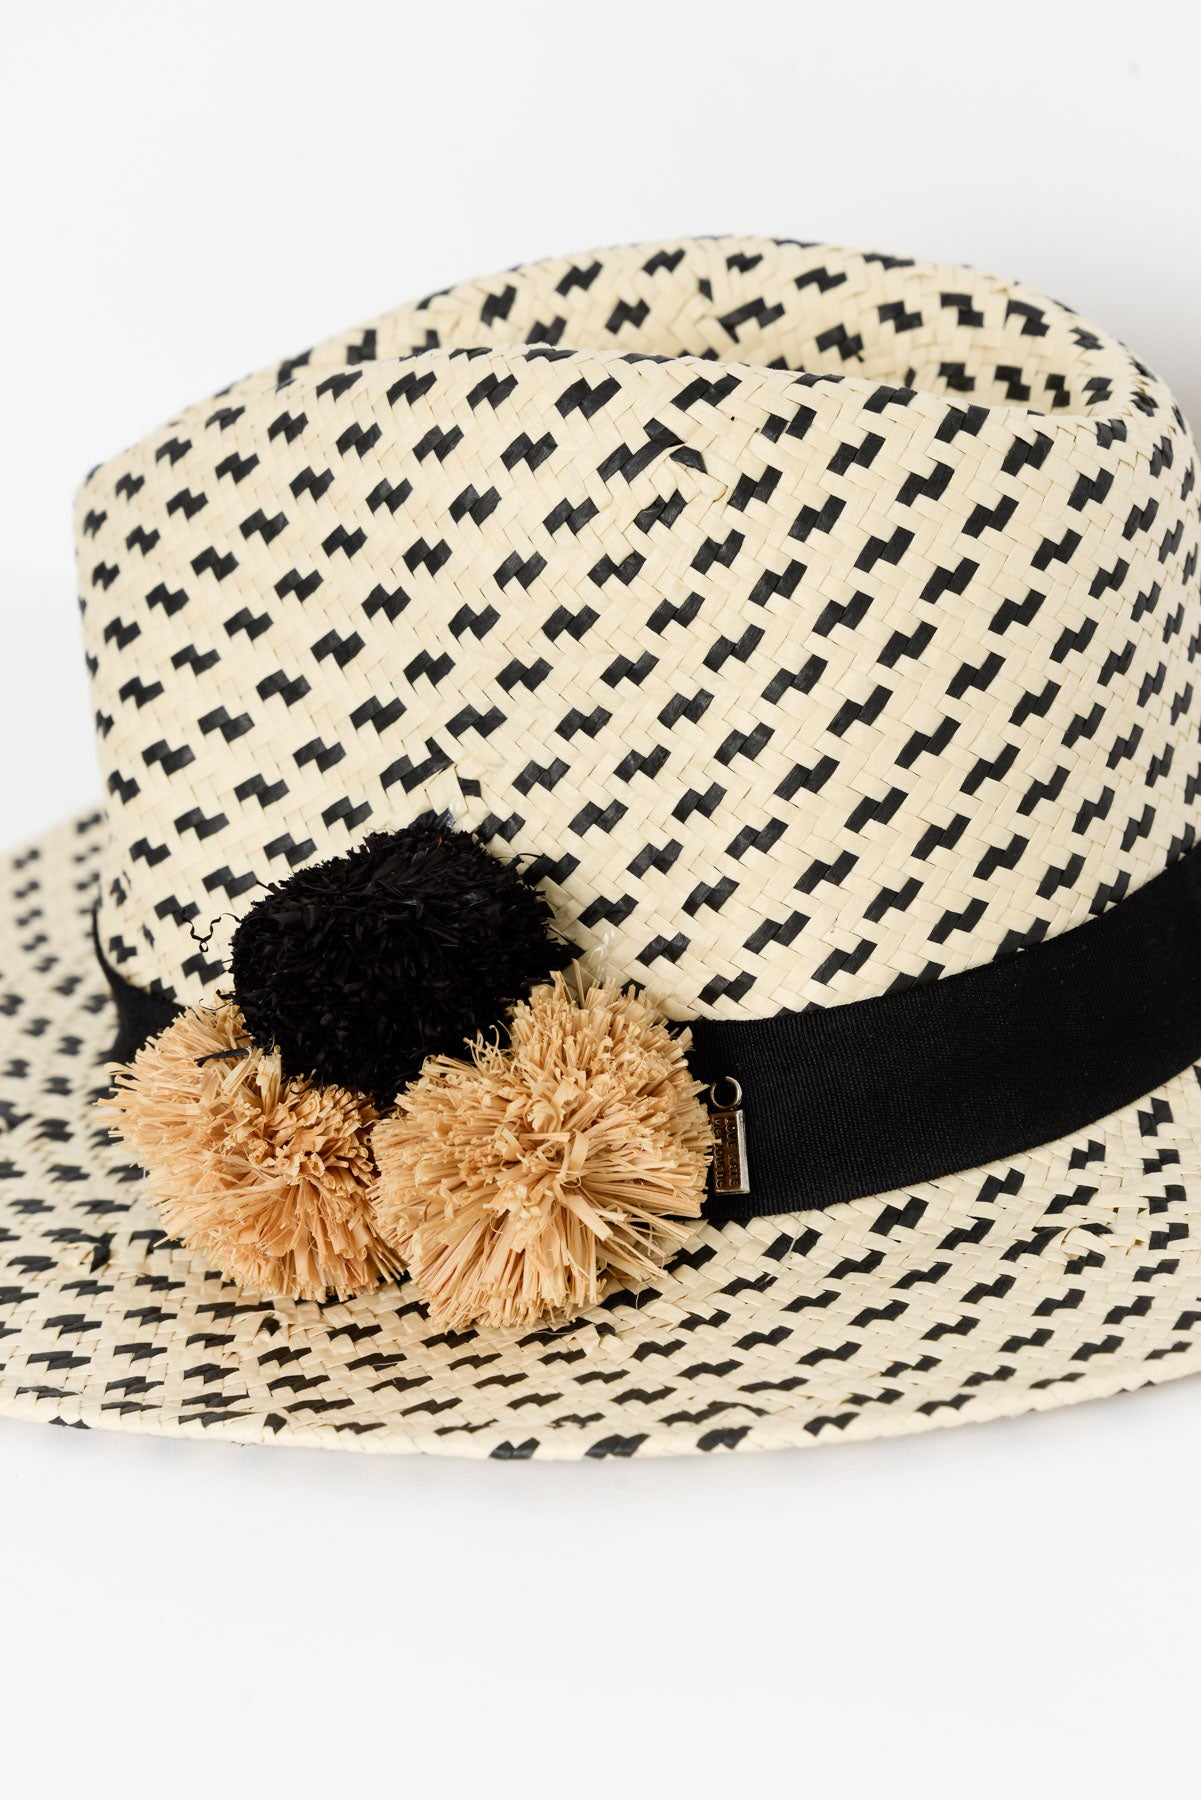 Salt 'N Pepper Woven Hat - Blue Bungalow